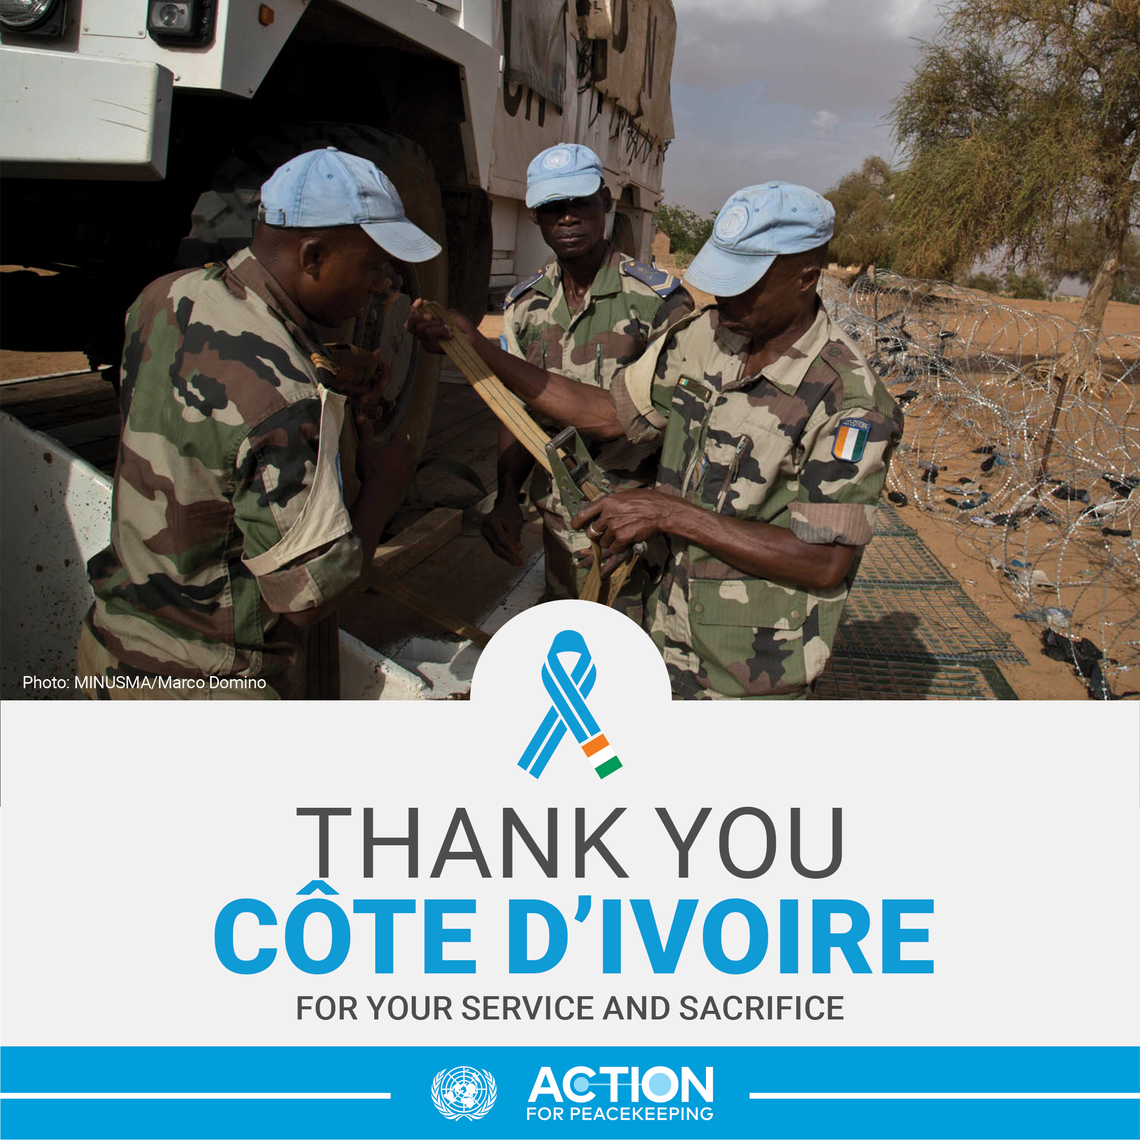 Thank you Côte d'Ivoire for your service and sacrifice